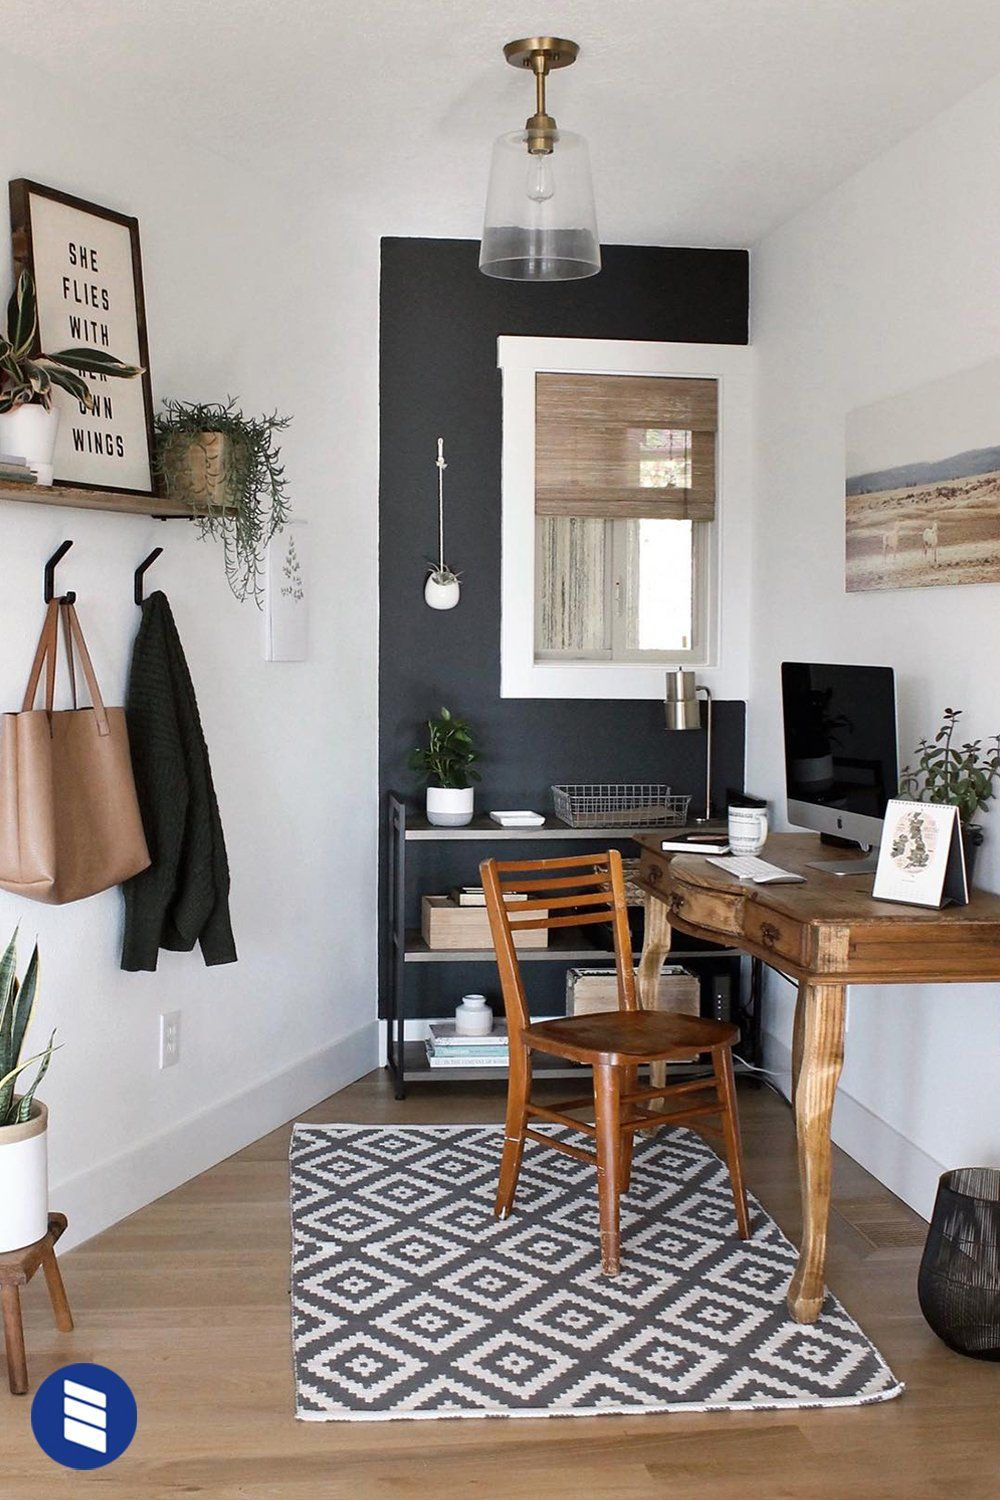 This Tiny Nook Office Is Still Big On Style Make Your Space Pop With A Dark Accent Wall Surrounded By Neutral Fixture Home Decor Office Nook Woven Wood Shades